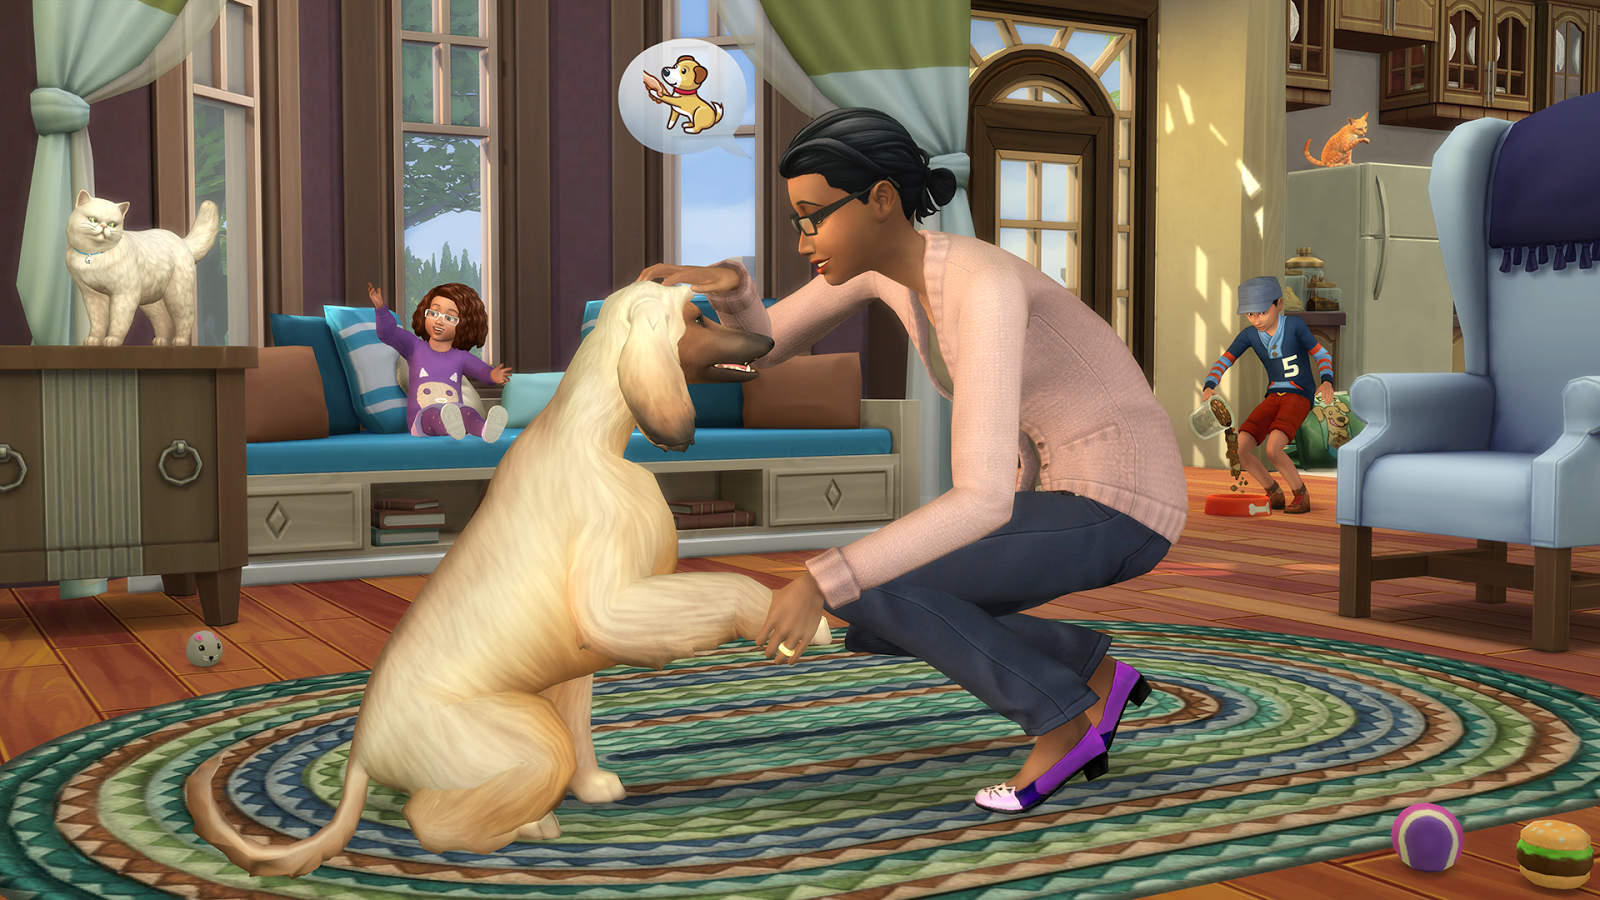 The Sims 4 is Raining Cats and Dogs